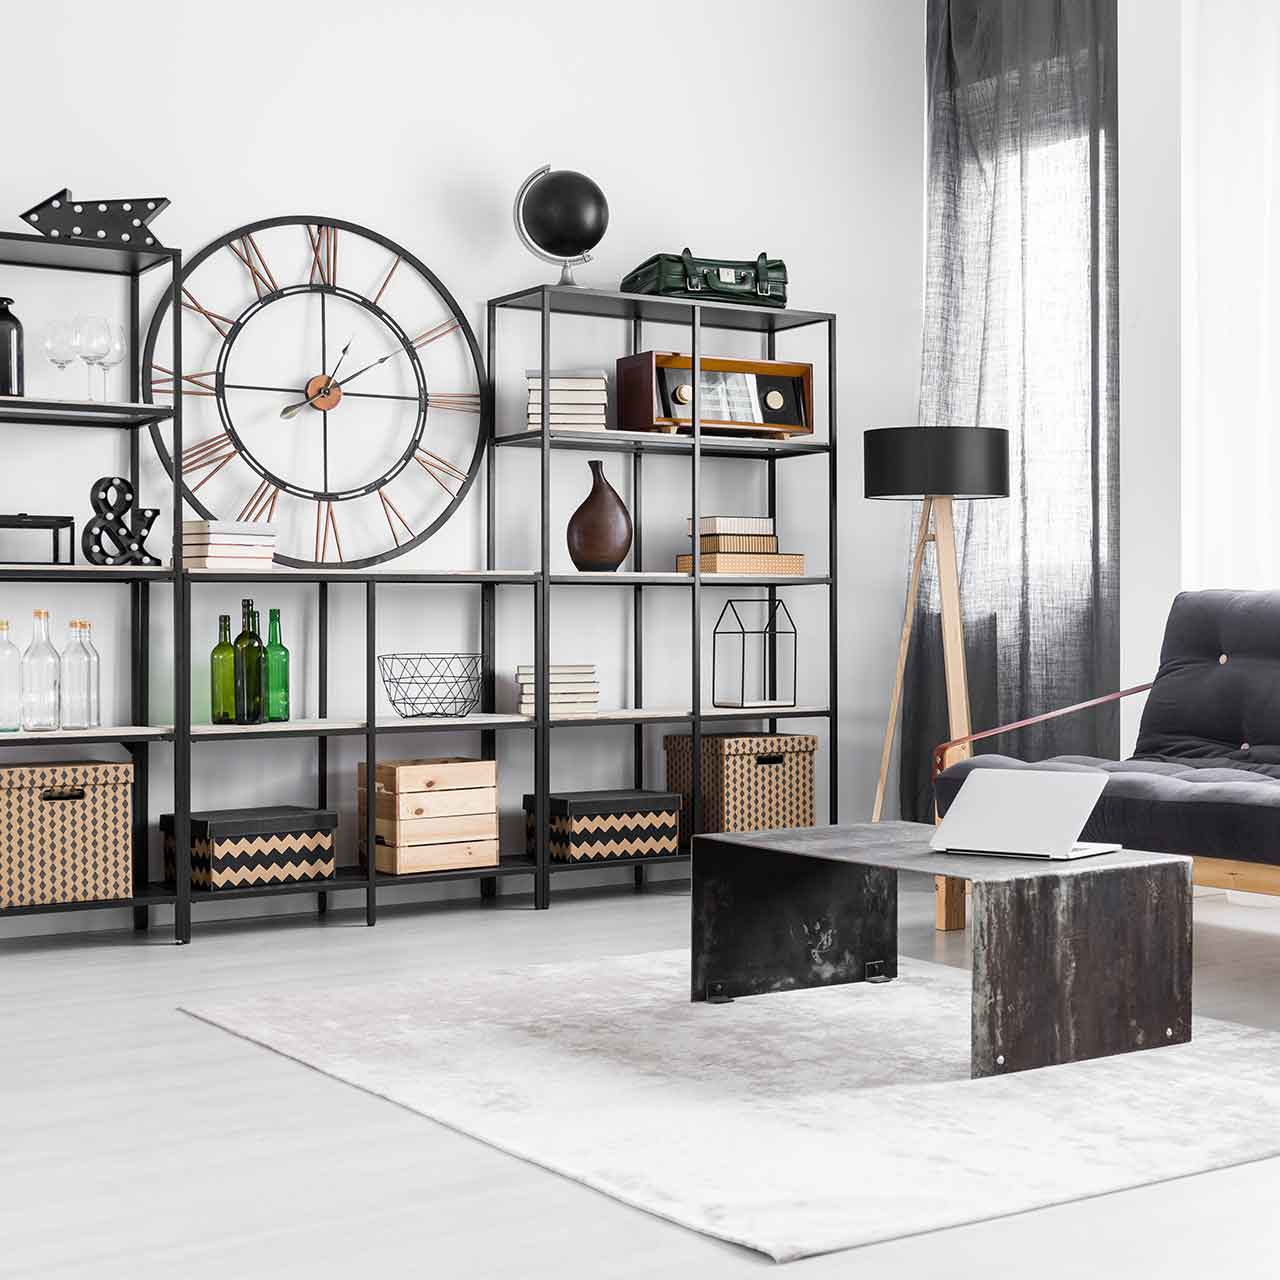 Industrial style living room design with white typographic prints, factory window meets shaggy rugs, iron piping, and wooden floors